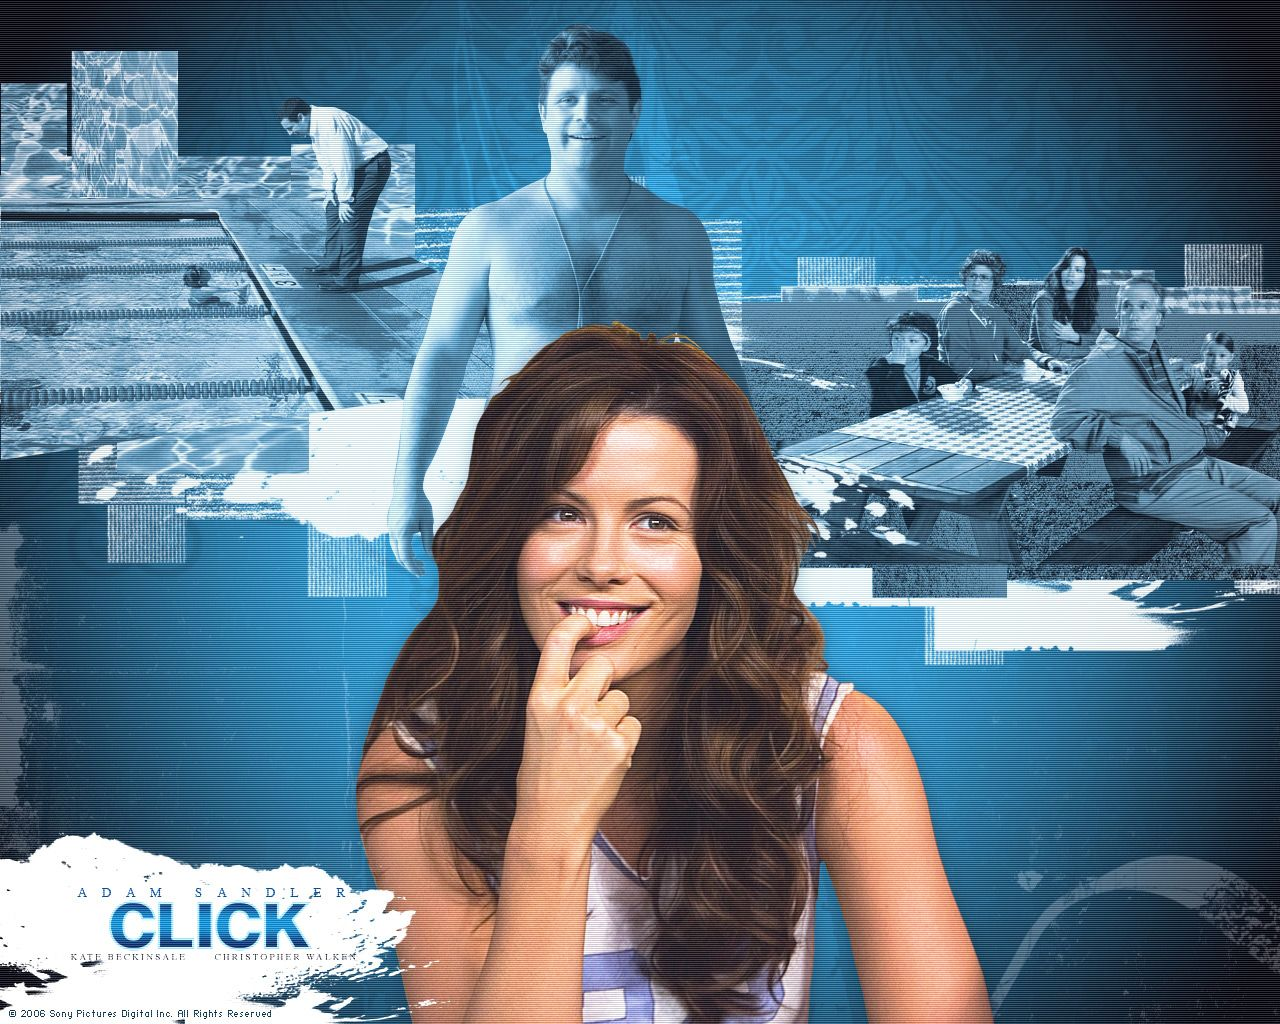 Watch Streaming HD Click, starring Adam Sandler, Kate Beckinsale, Christopher Walken, David Hasselhoff. A workaholic architect finds a universal remote that allows him to fast-forward and rewind to different parts of his life. Complications arise when the remote starts to overrule his choices. #Comedy #Drama #Fantasy #Romance http://play.theatrr.com/play.php?movie=0389860